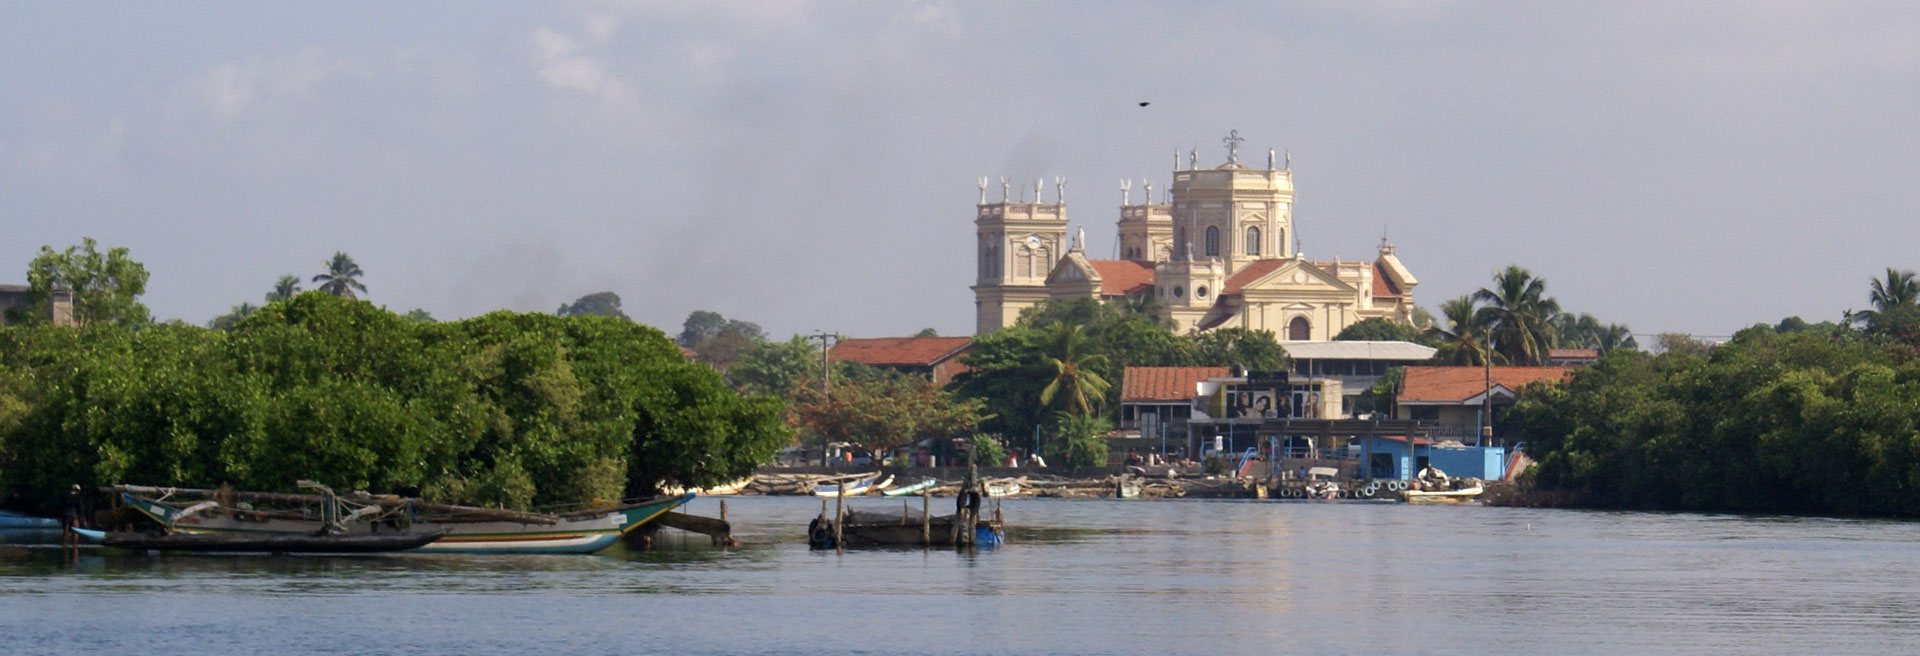 view of the negombo lagoon